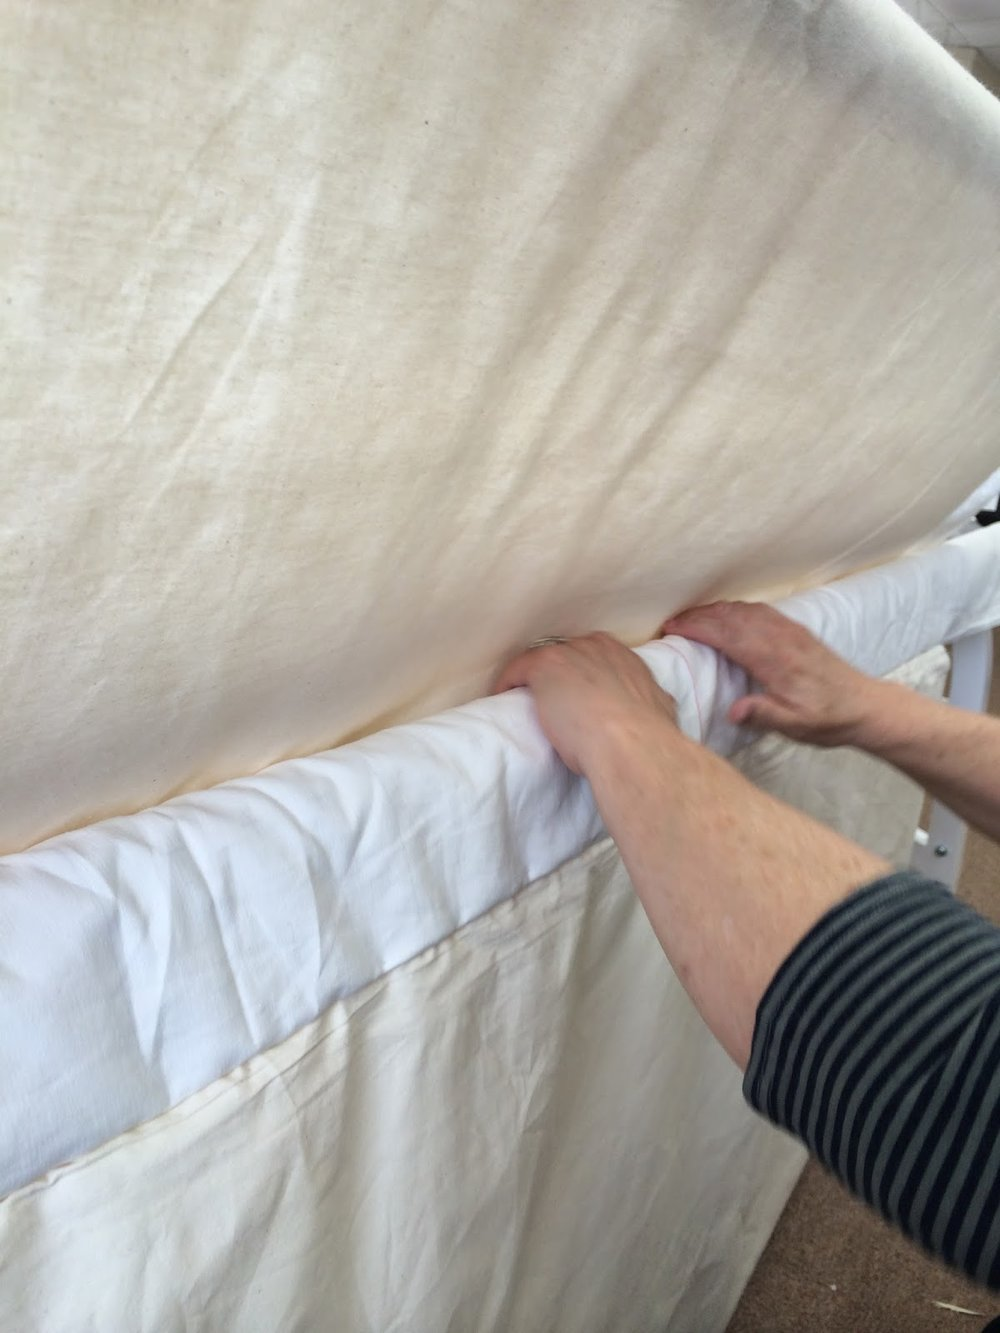 Baste the top of the quilt to the backing and batting. Repeat pinning to the leaders with the top of the quilt.